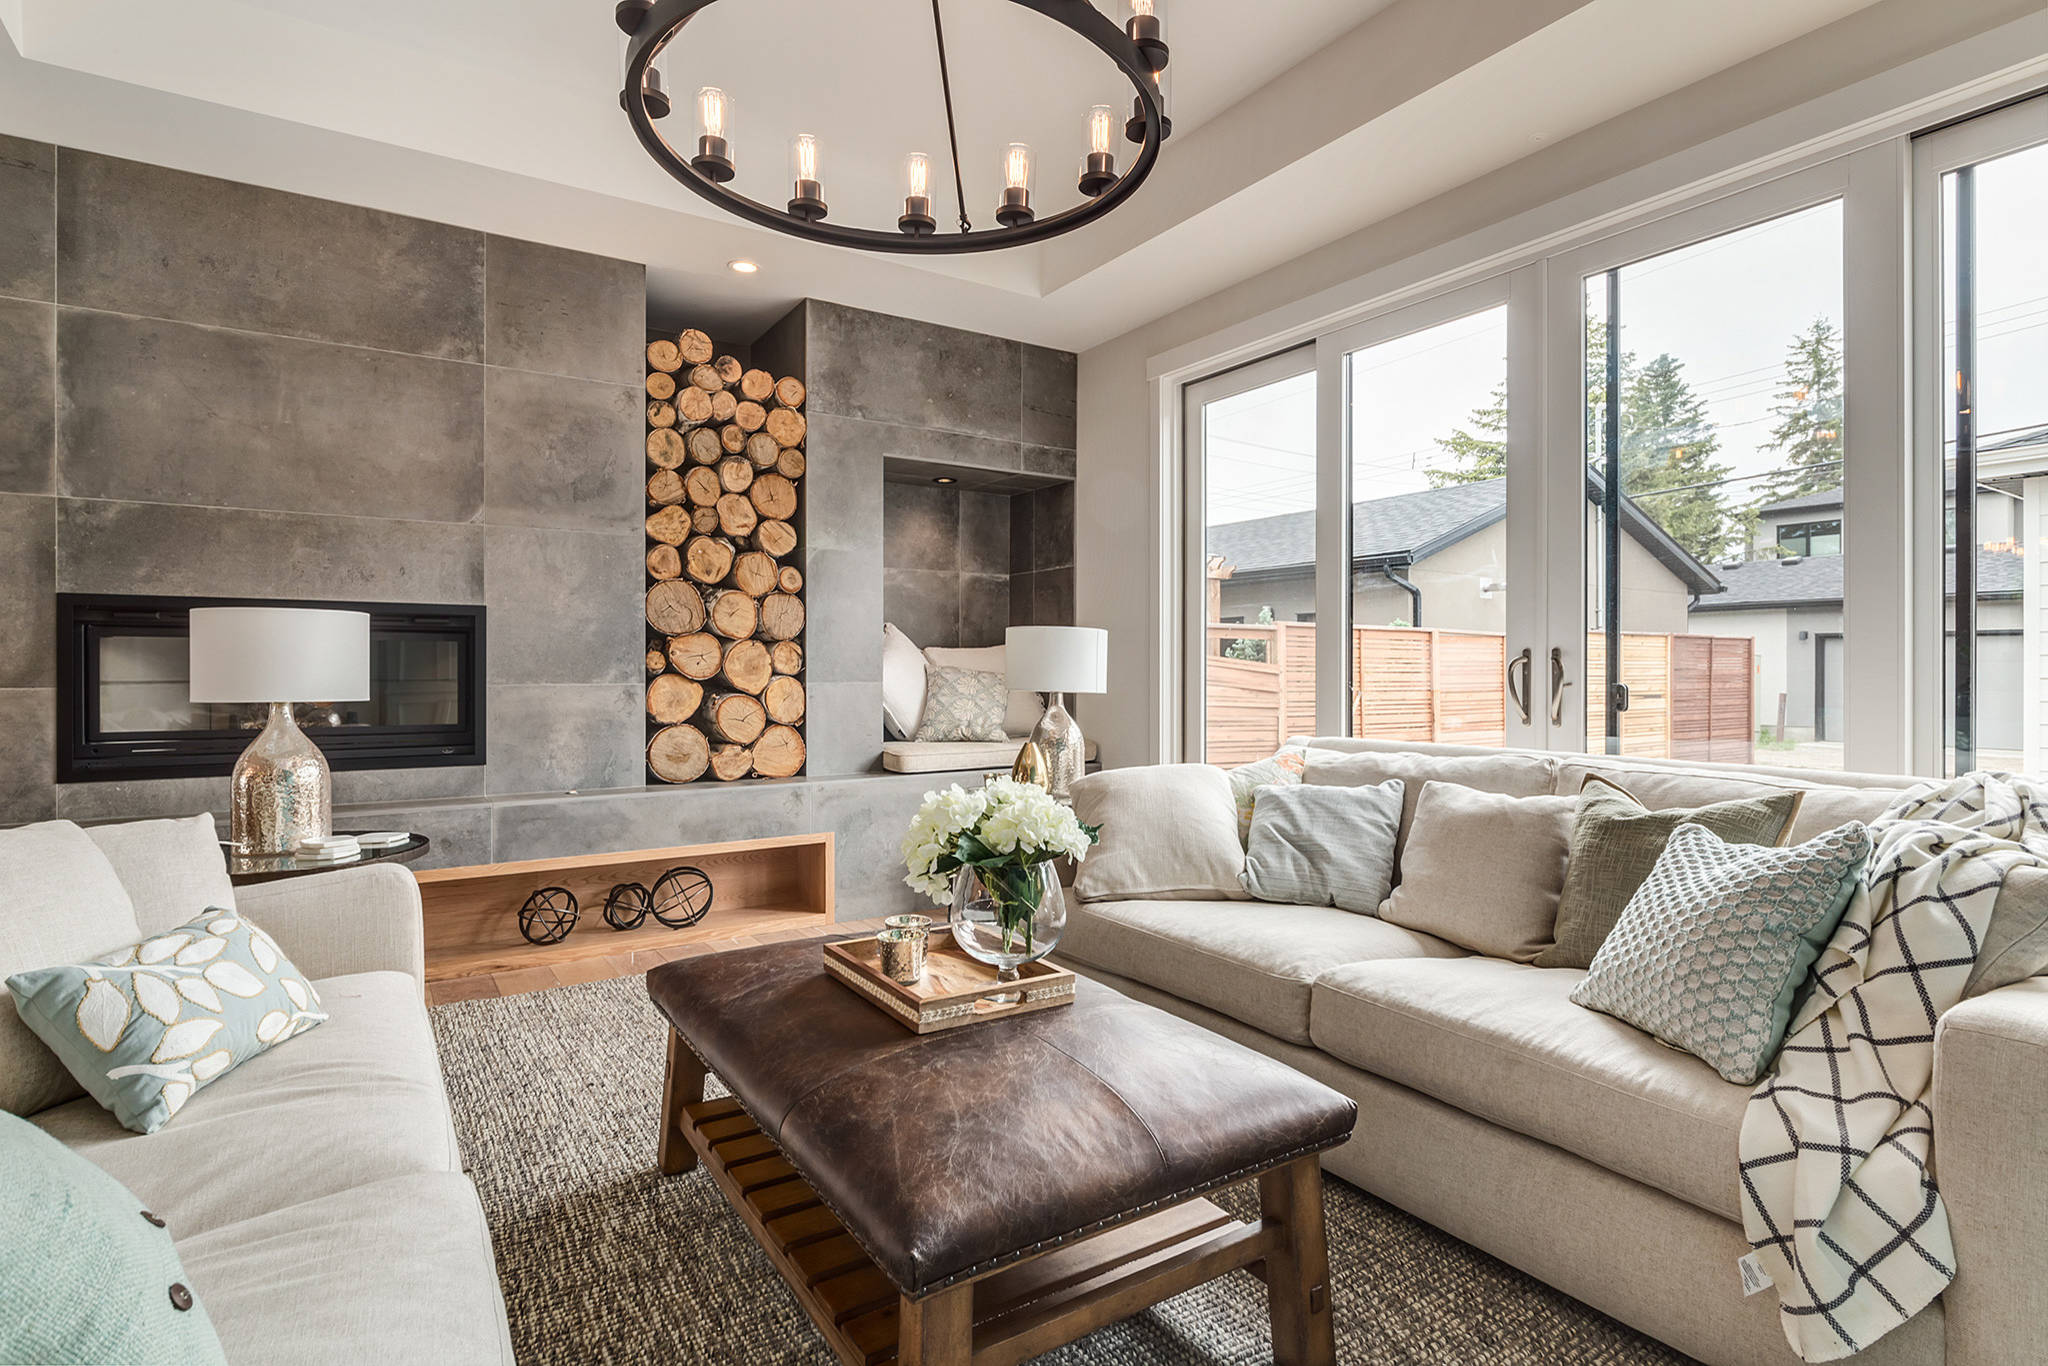 75 Beautiful Farmhouse Living Room With A Wood Stove Pictures Ideas December 2020 Houzz